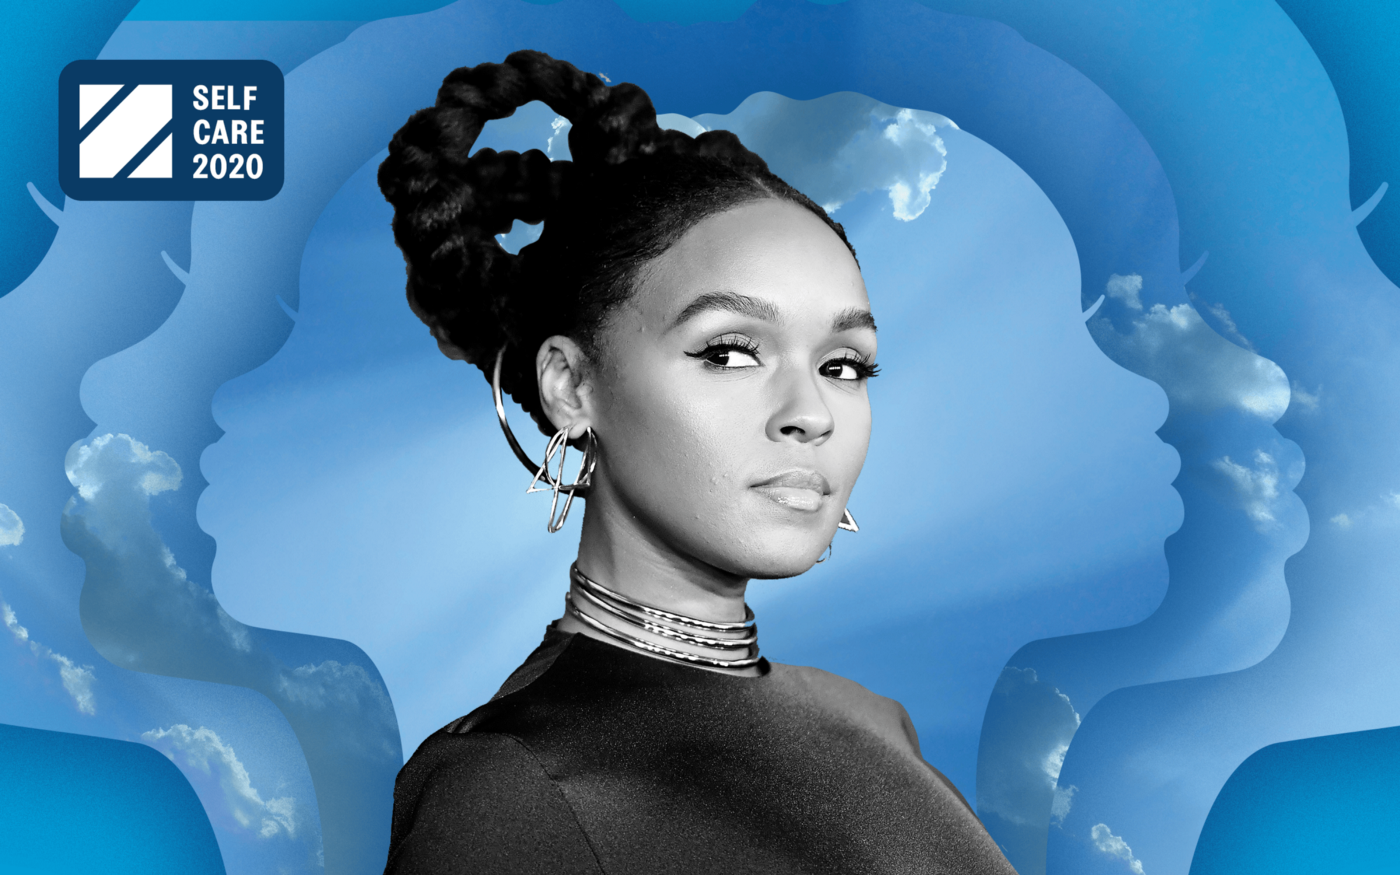 Black and white photo of Janelle Monae against a sky background with concentric silhouette of a woman's face.